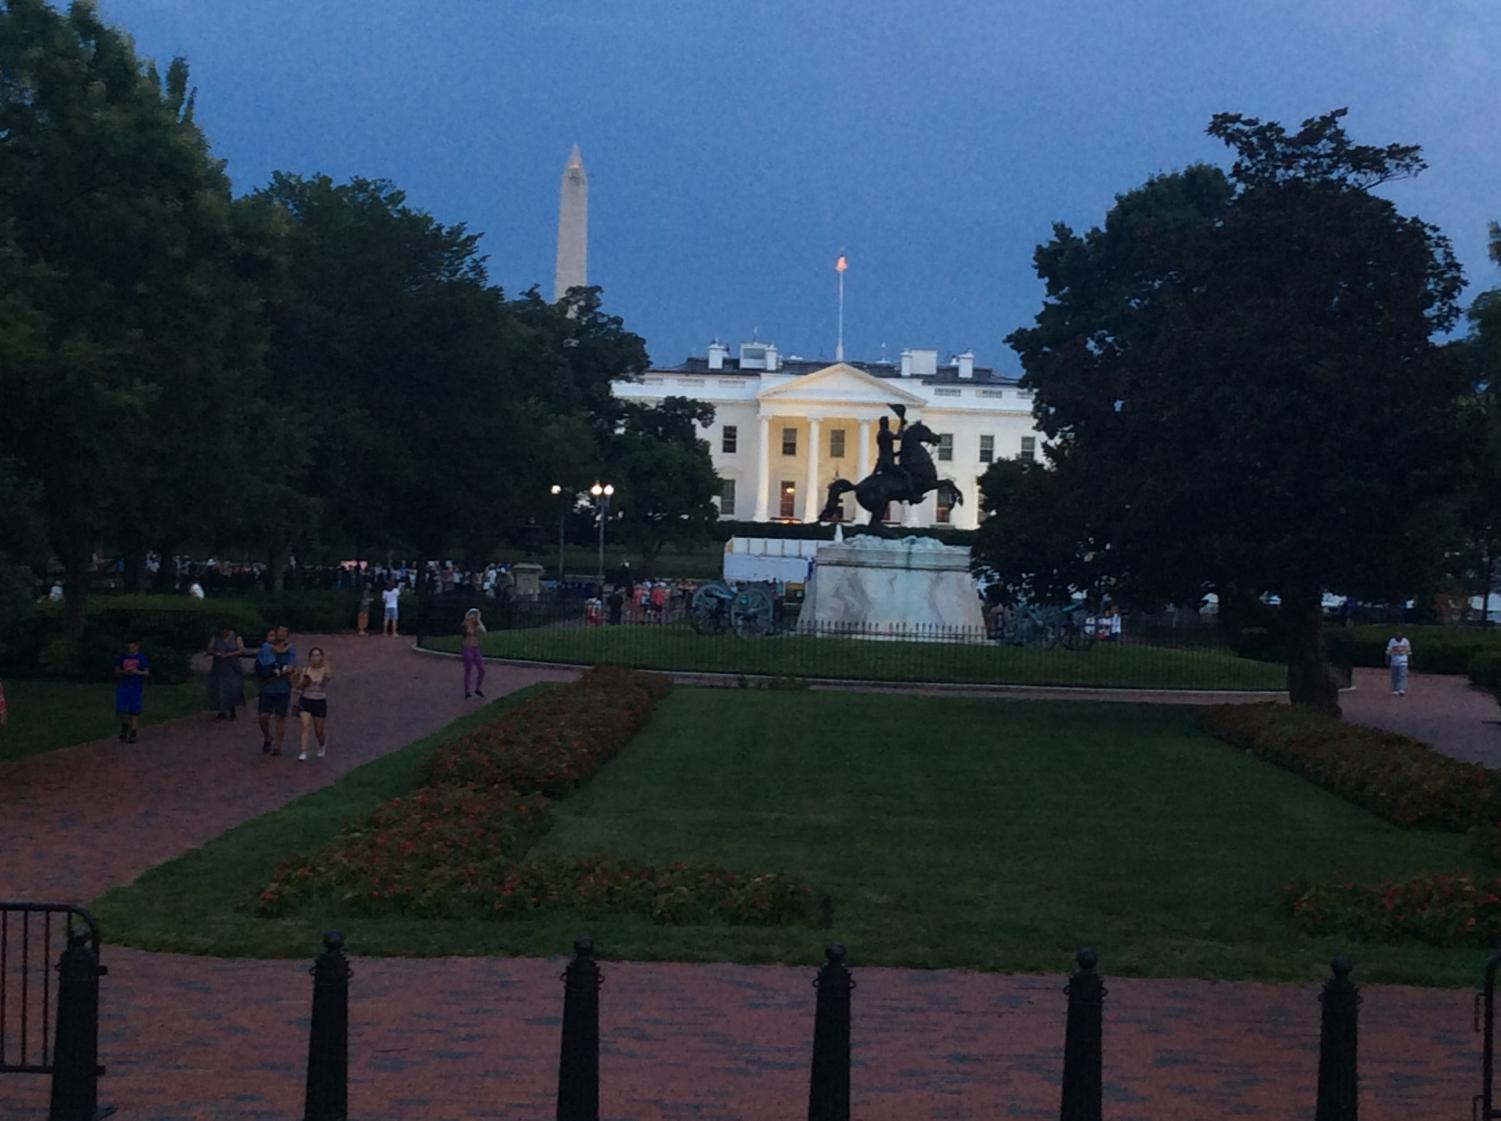 1600 Pennsylvania Avenue NW, Washington, D.C., home to the president of the United States, as seen on July 31, 2019. In the foreground is a statue of Andrew Jackson. In the rear is the Washington Monument.